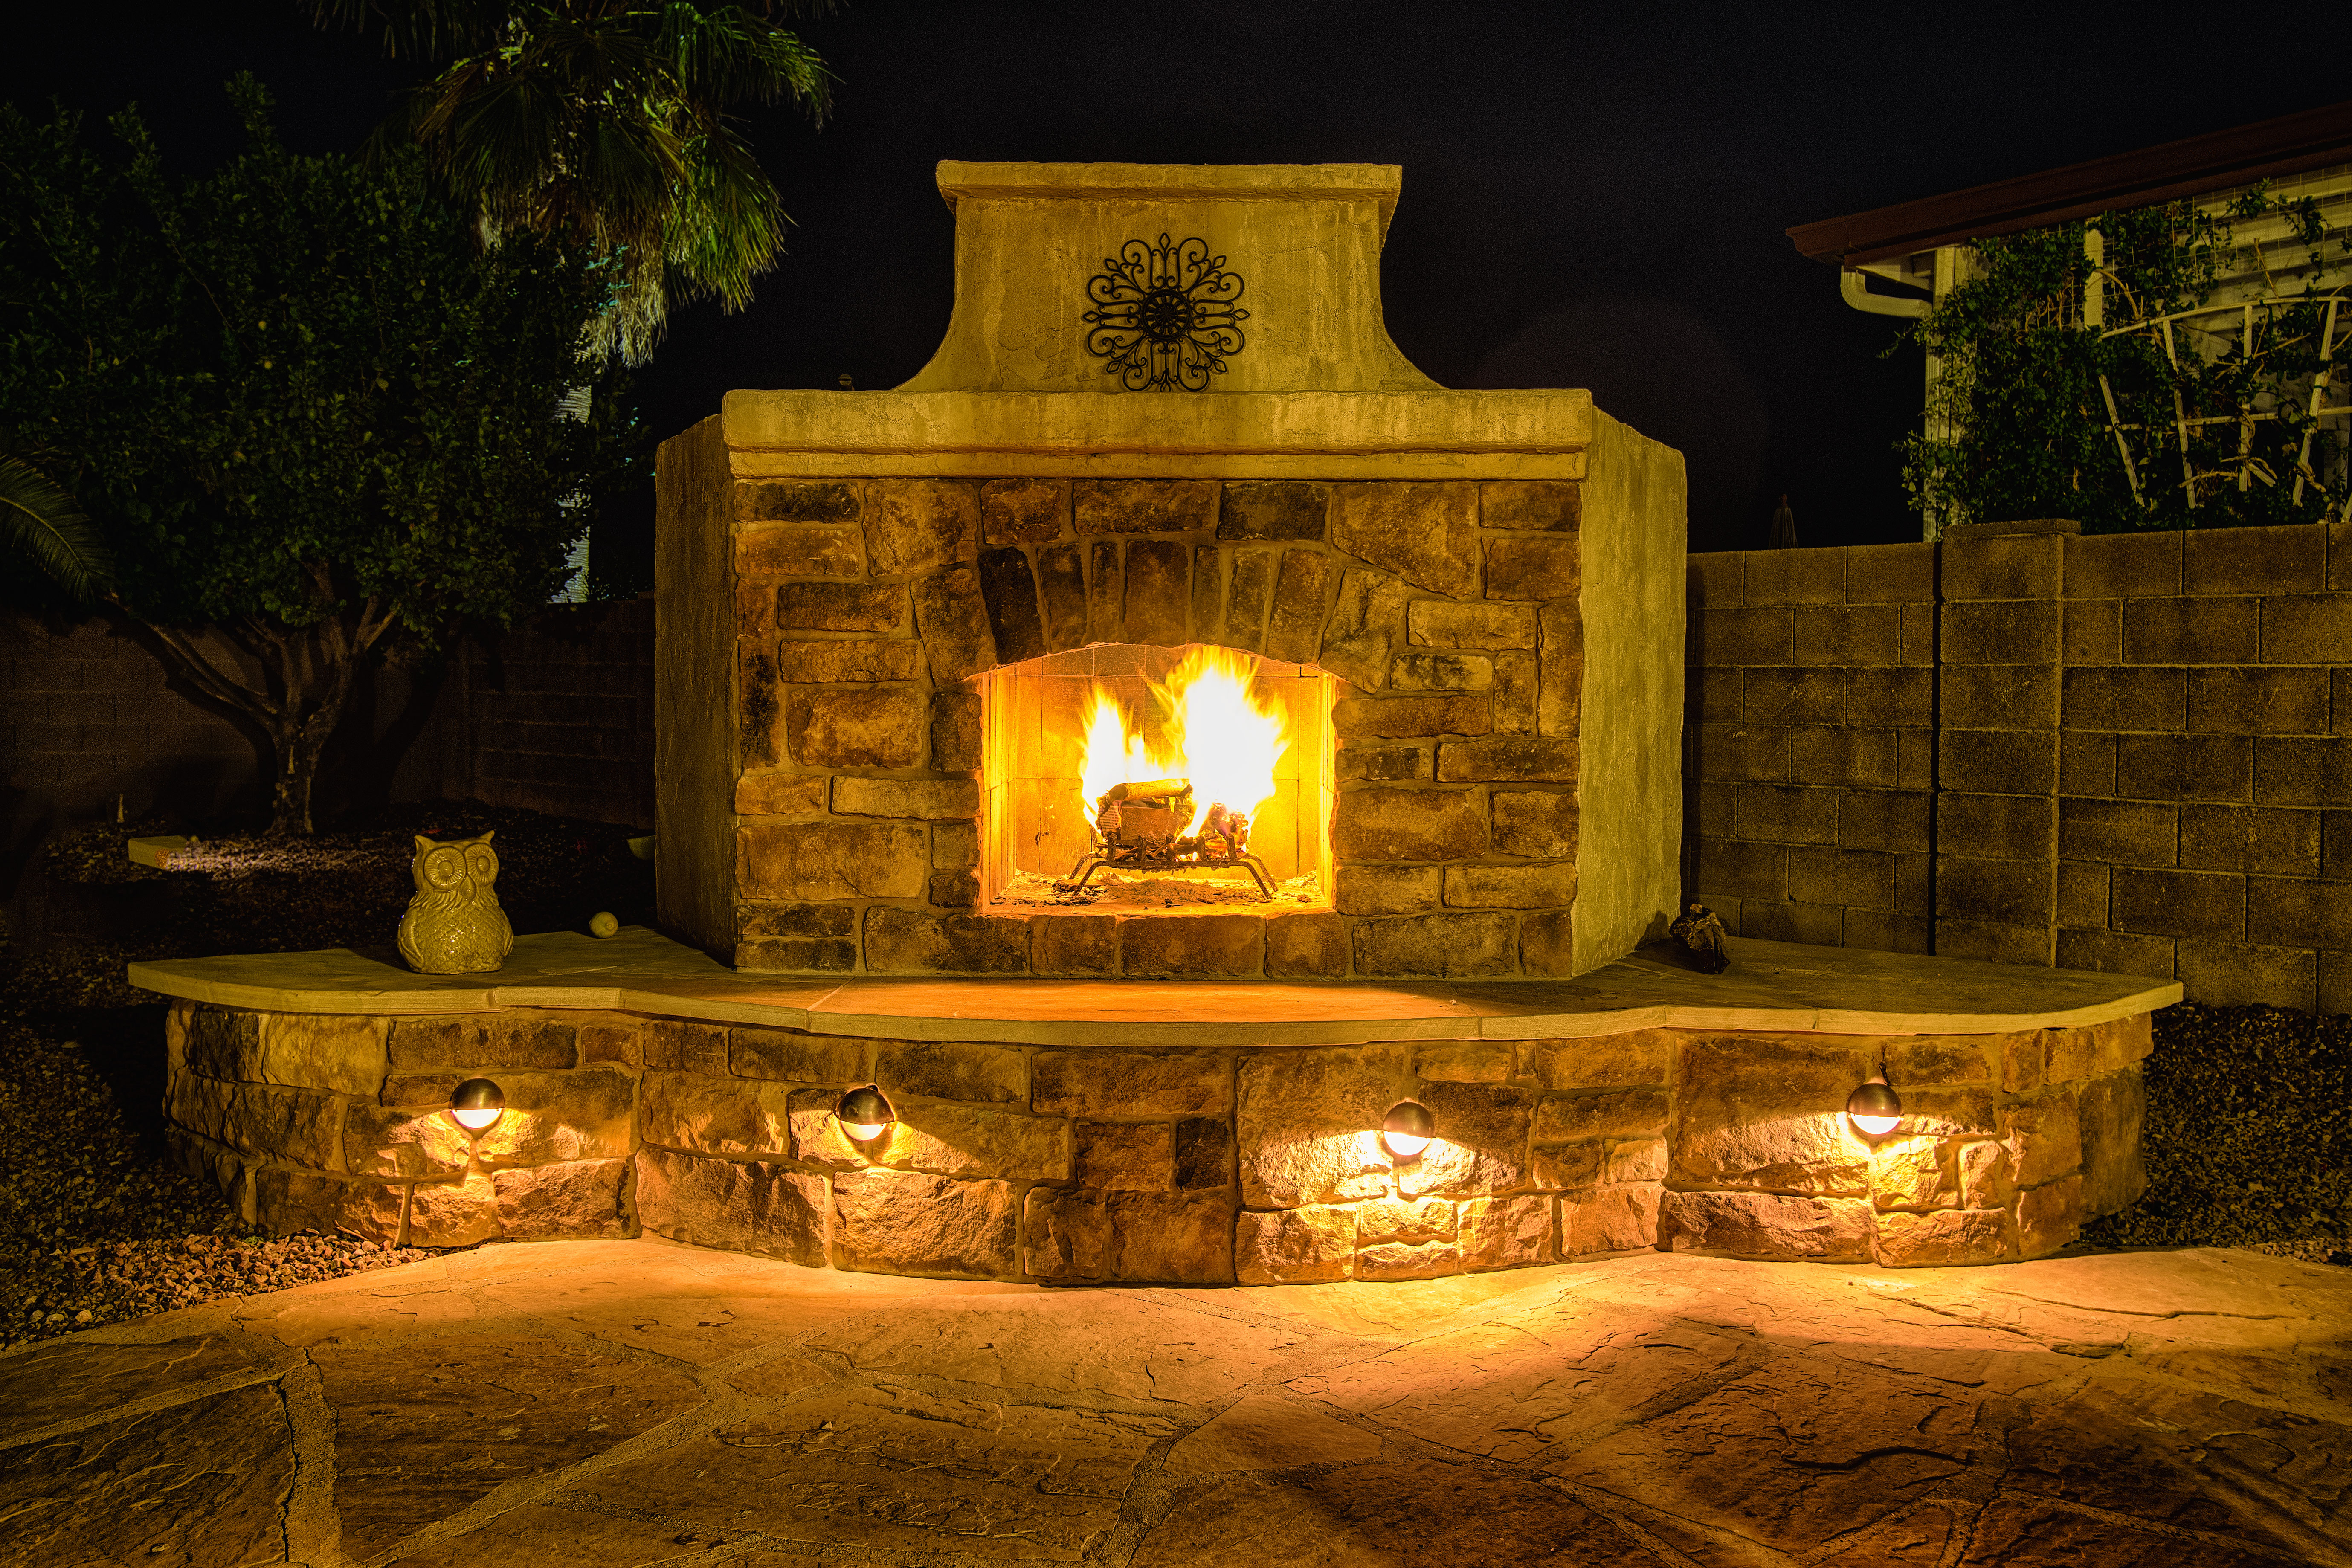 Outdoor Fireplace Design | Your DIY Outdoor Fireplace ... on Diy Outside Fireplace id=28656